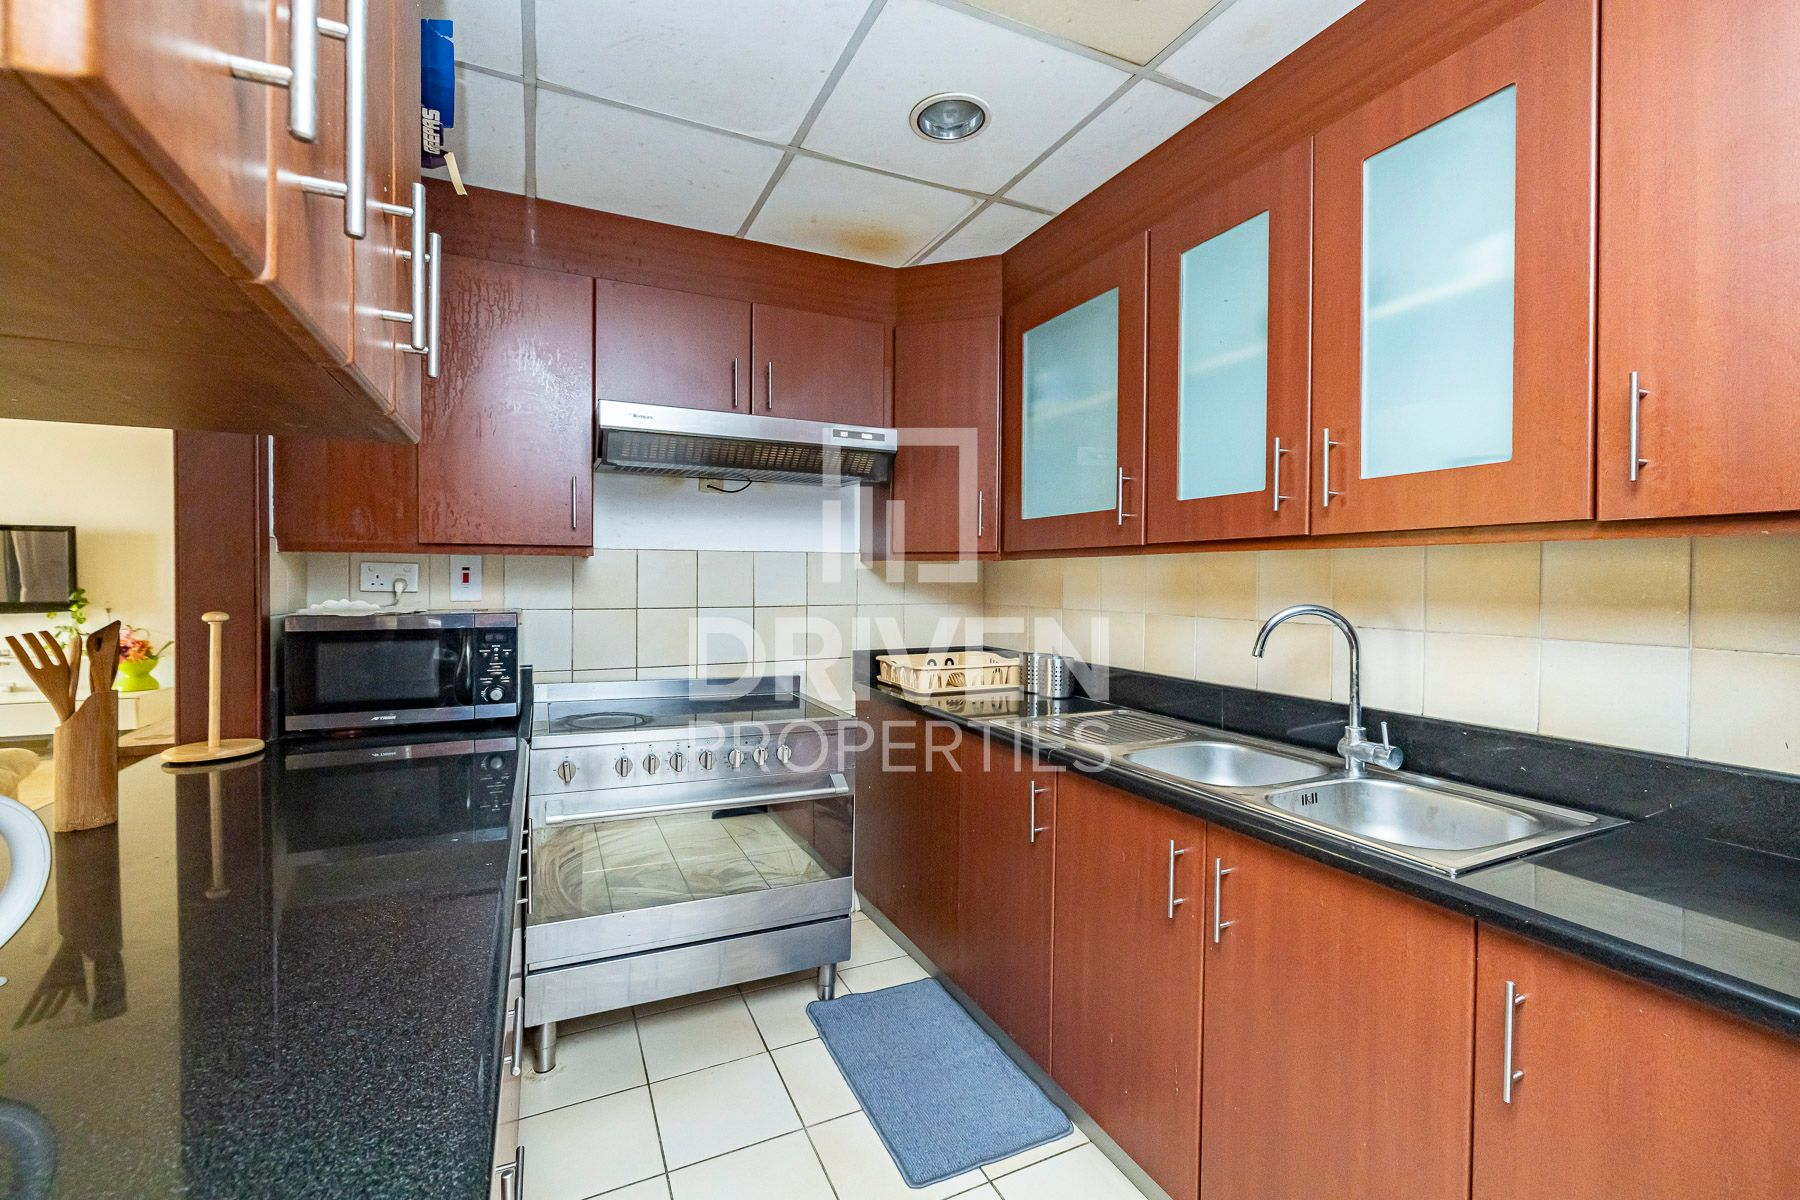 Apartment for Rent in Sadaf 2 - Jumeirah Beach Residence